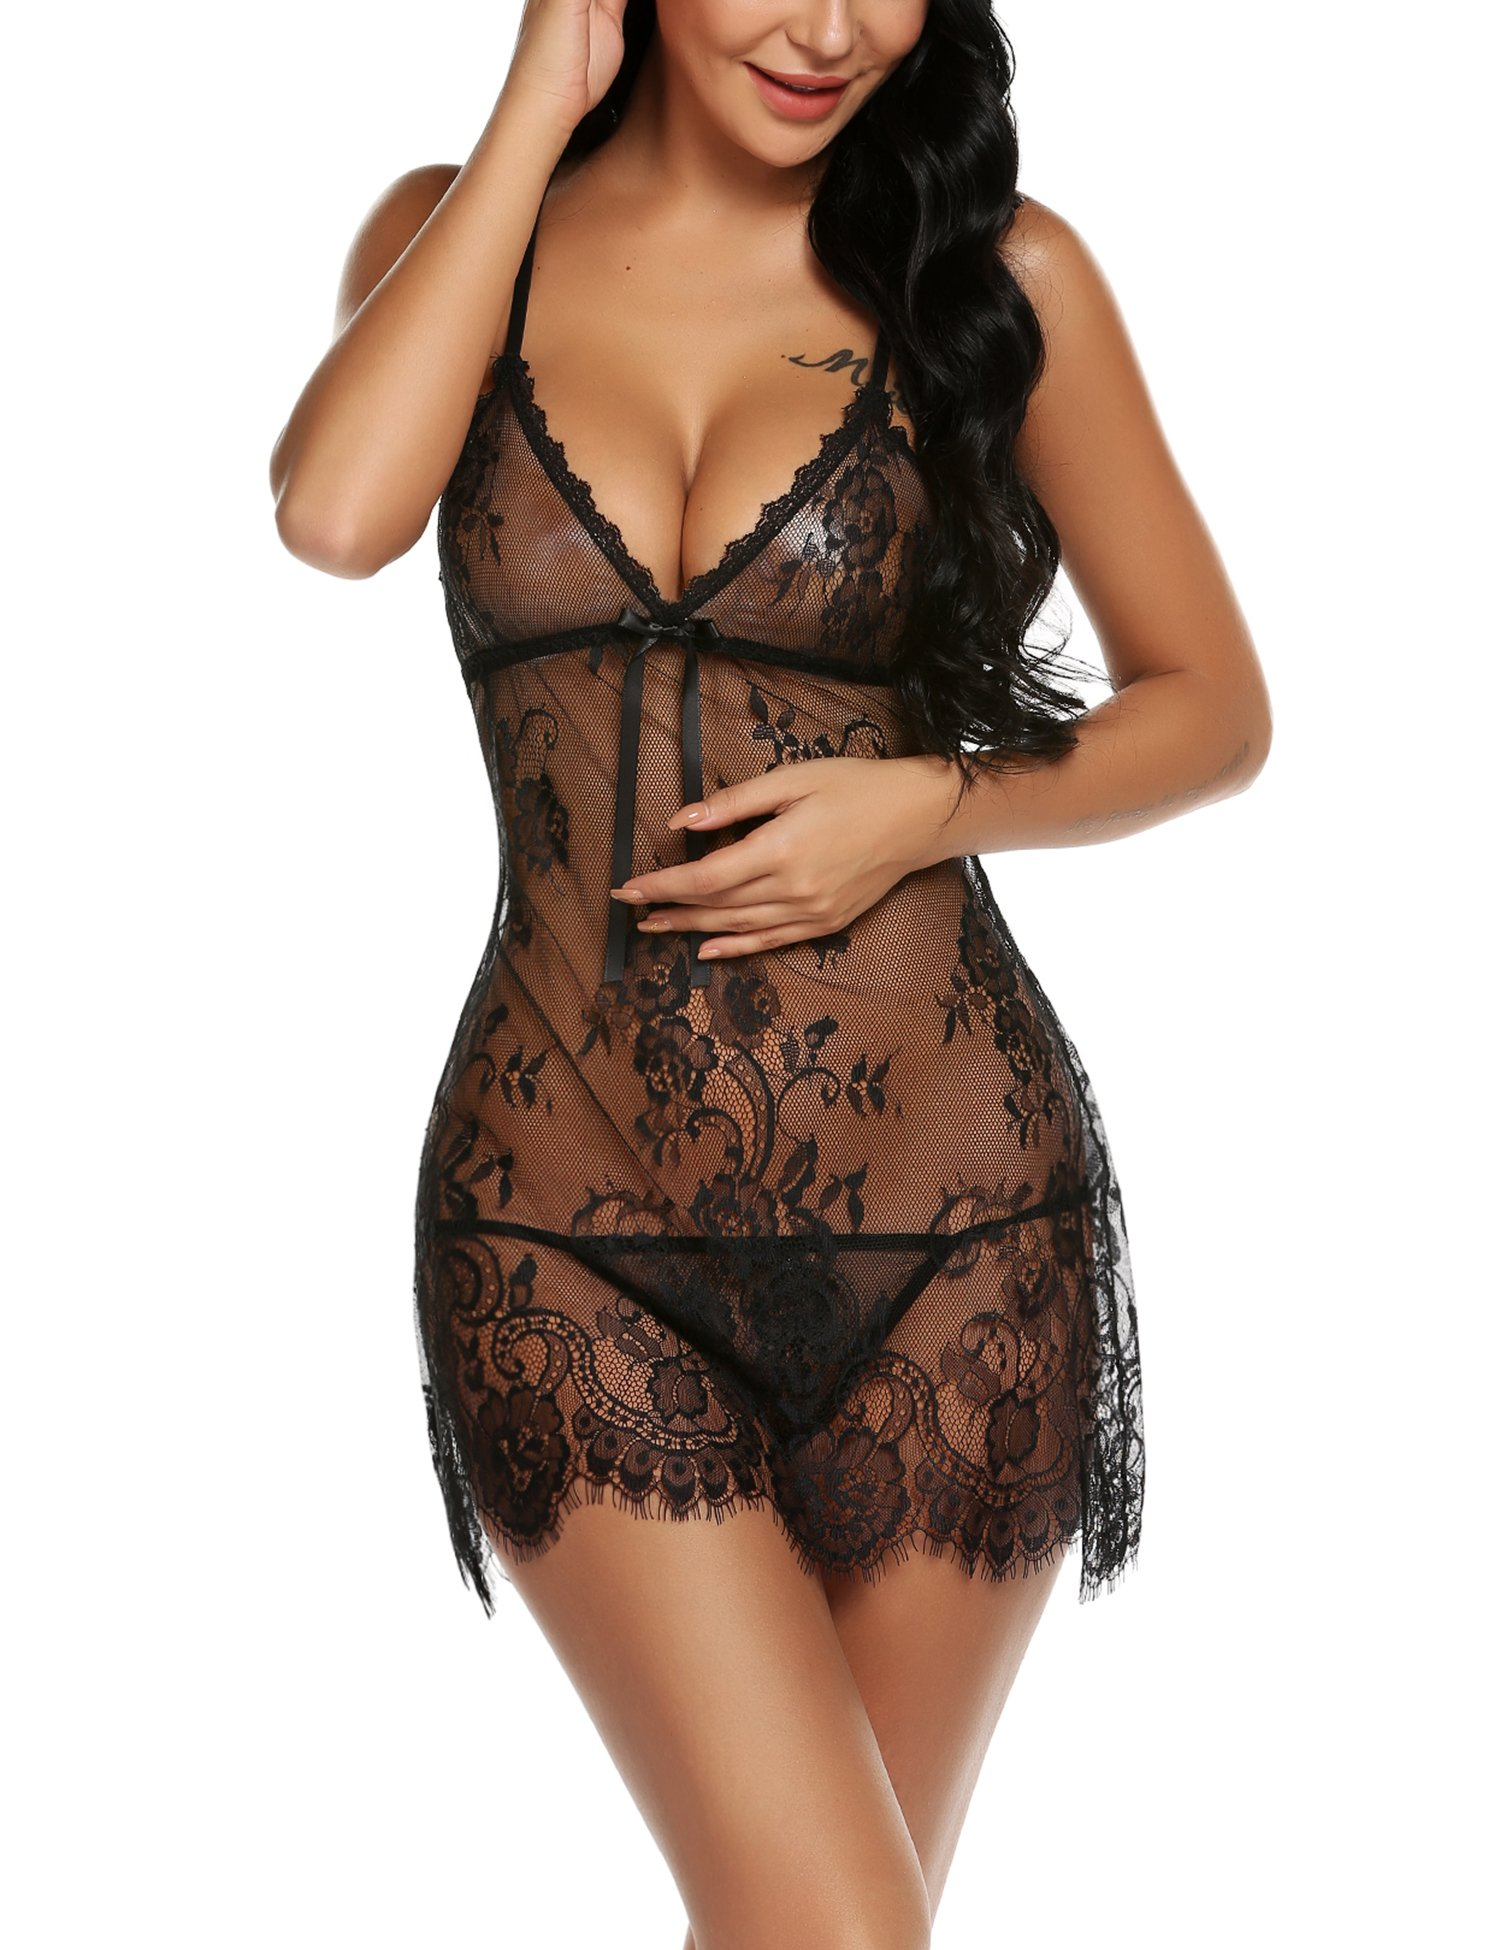 046c93c40 Galleon - ADOME Lingerie For Women Lace Chemise Eyelash Babydoll Nightwear  With Hook Eye Detail